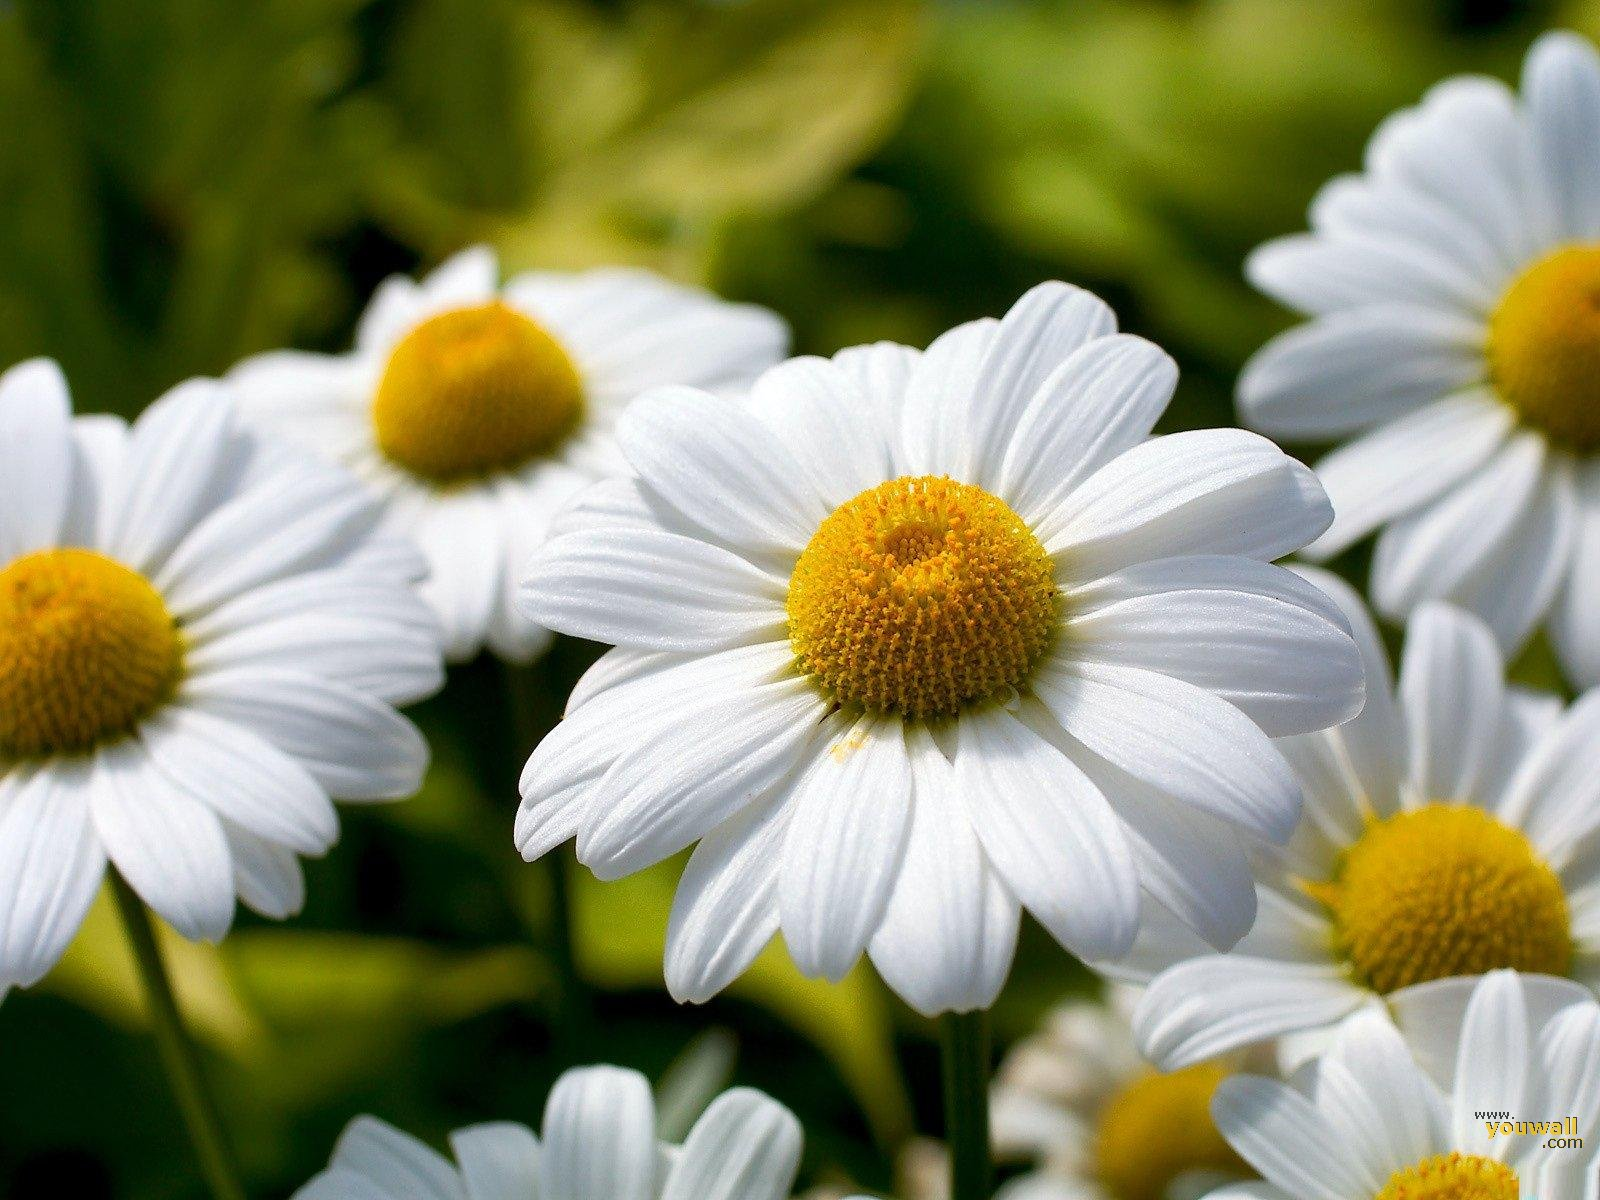 Marguerite daisy national flower of denmark meaning of the daisy marguerite daisy national flower of denmark izmirmasajfo